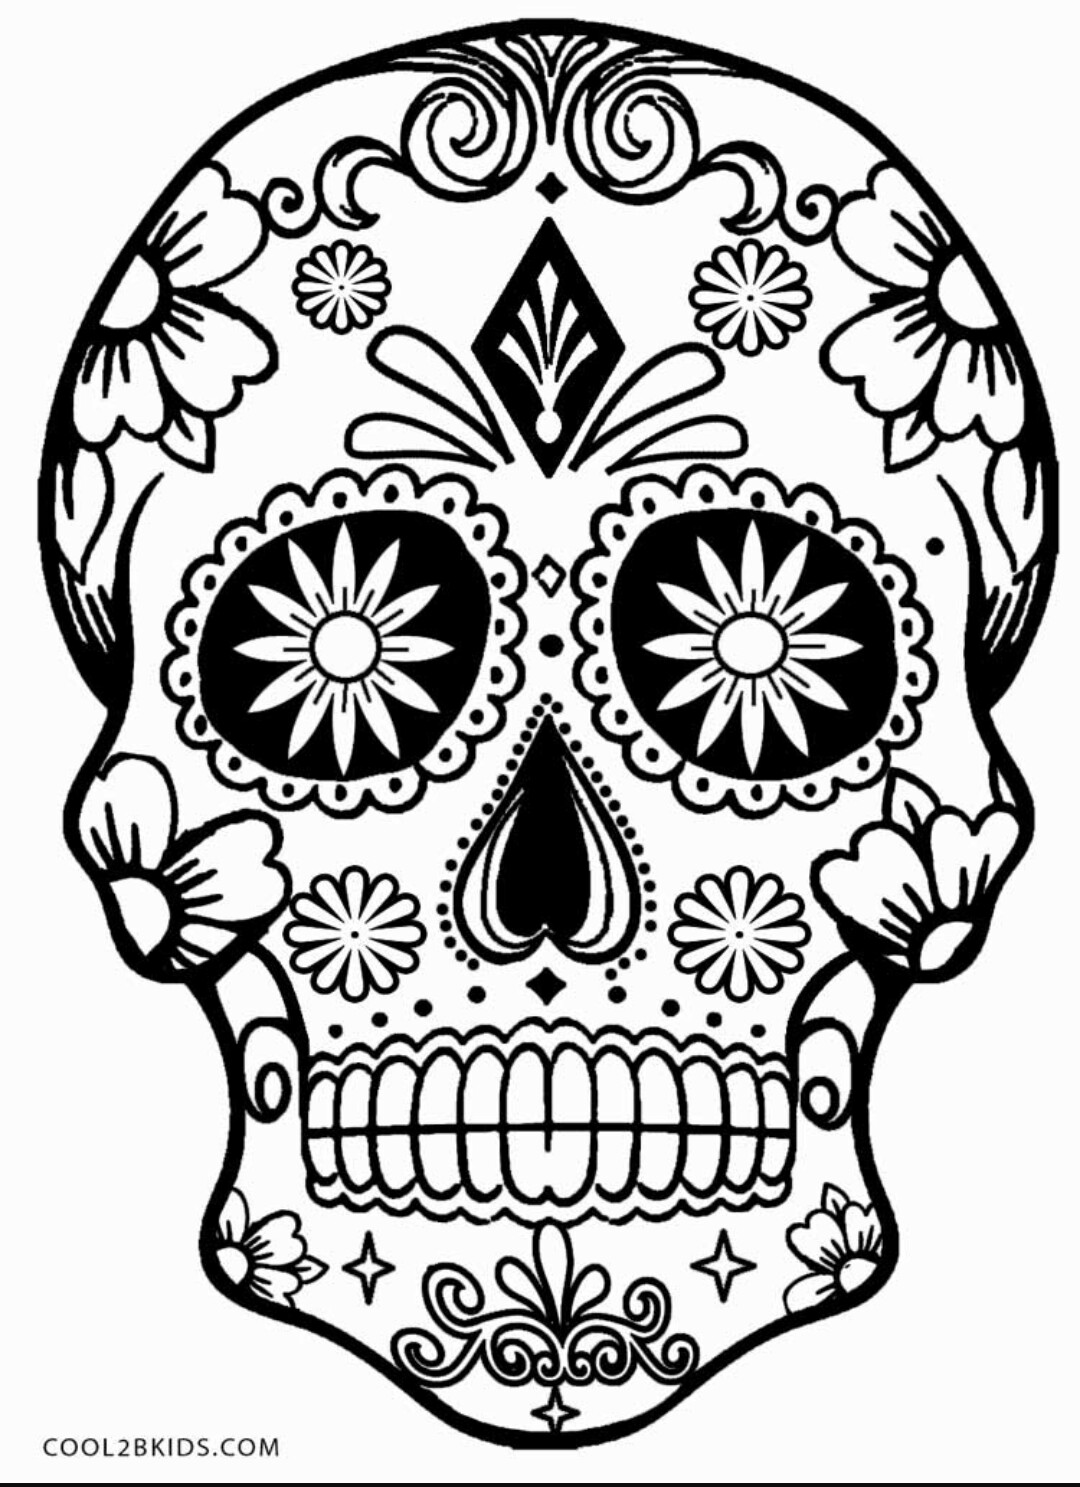 1080x1487 Pin By Sheri Powell On Skull Art Amp Tattoos